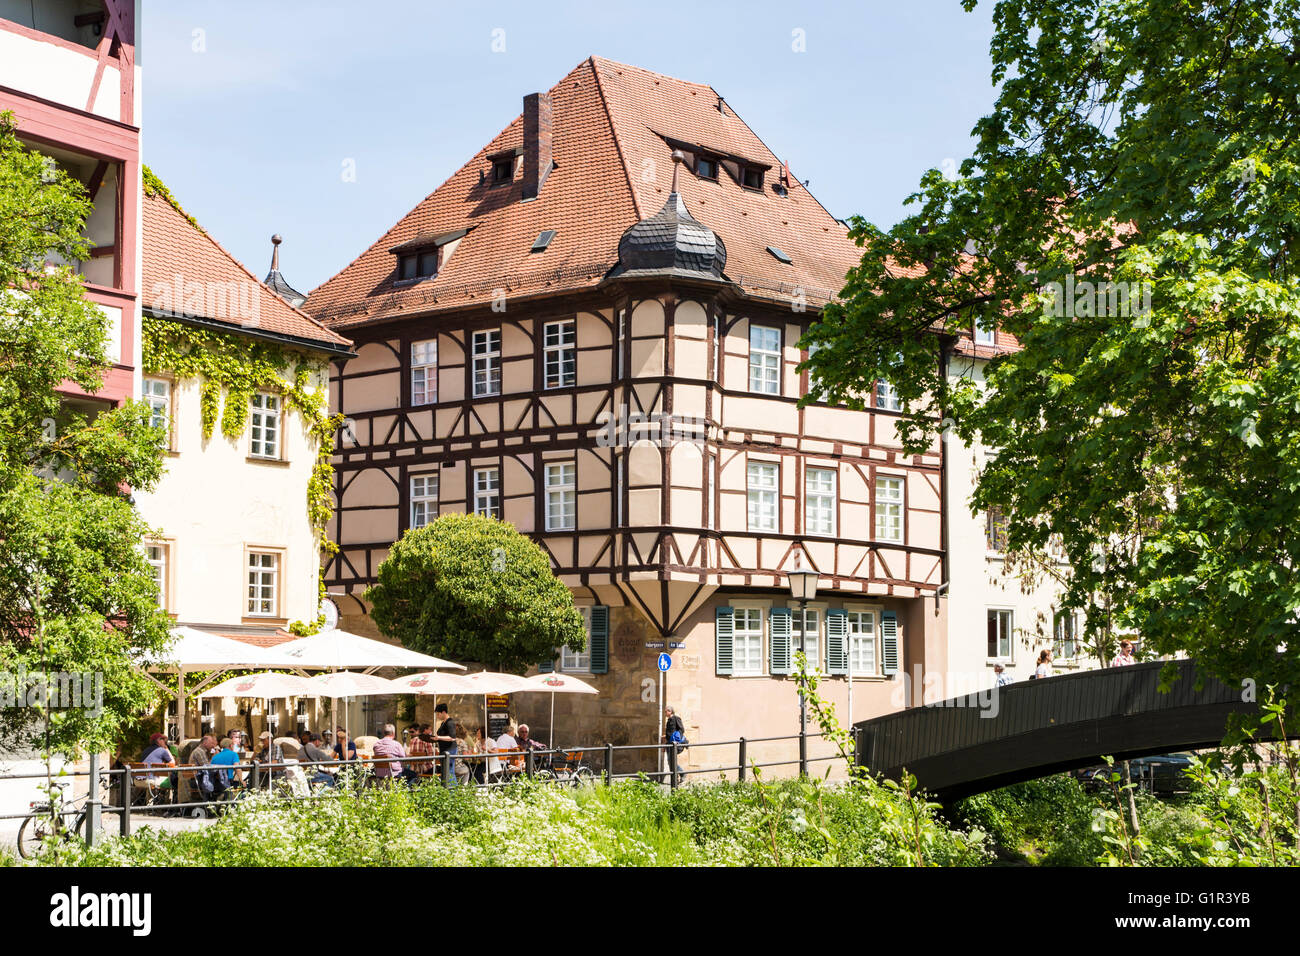 Tourists at a cafe in Bamberg, Germany on Mai 6, 2016. - Stock Image